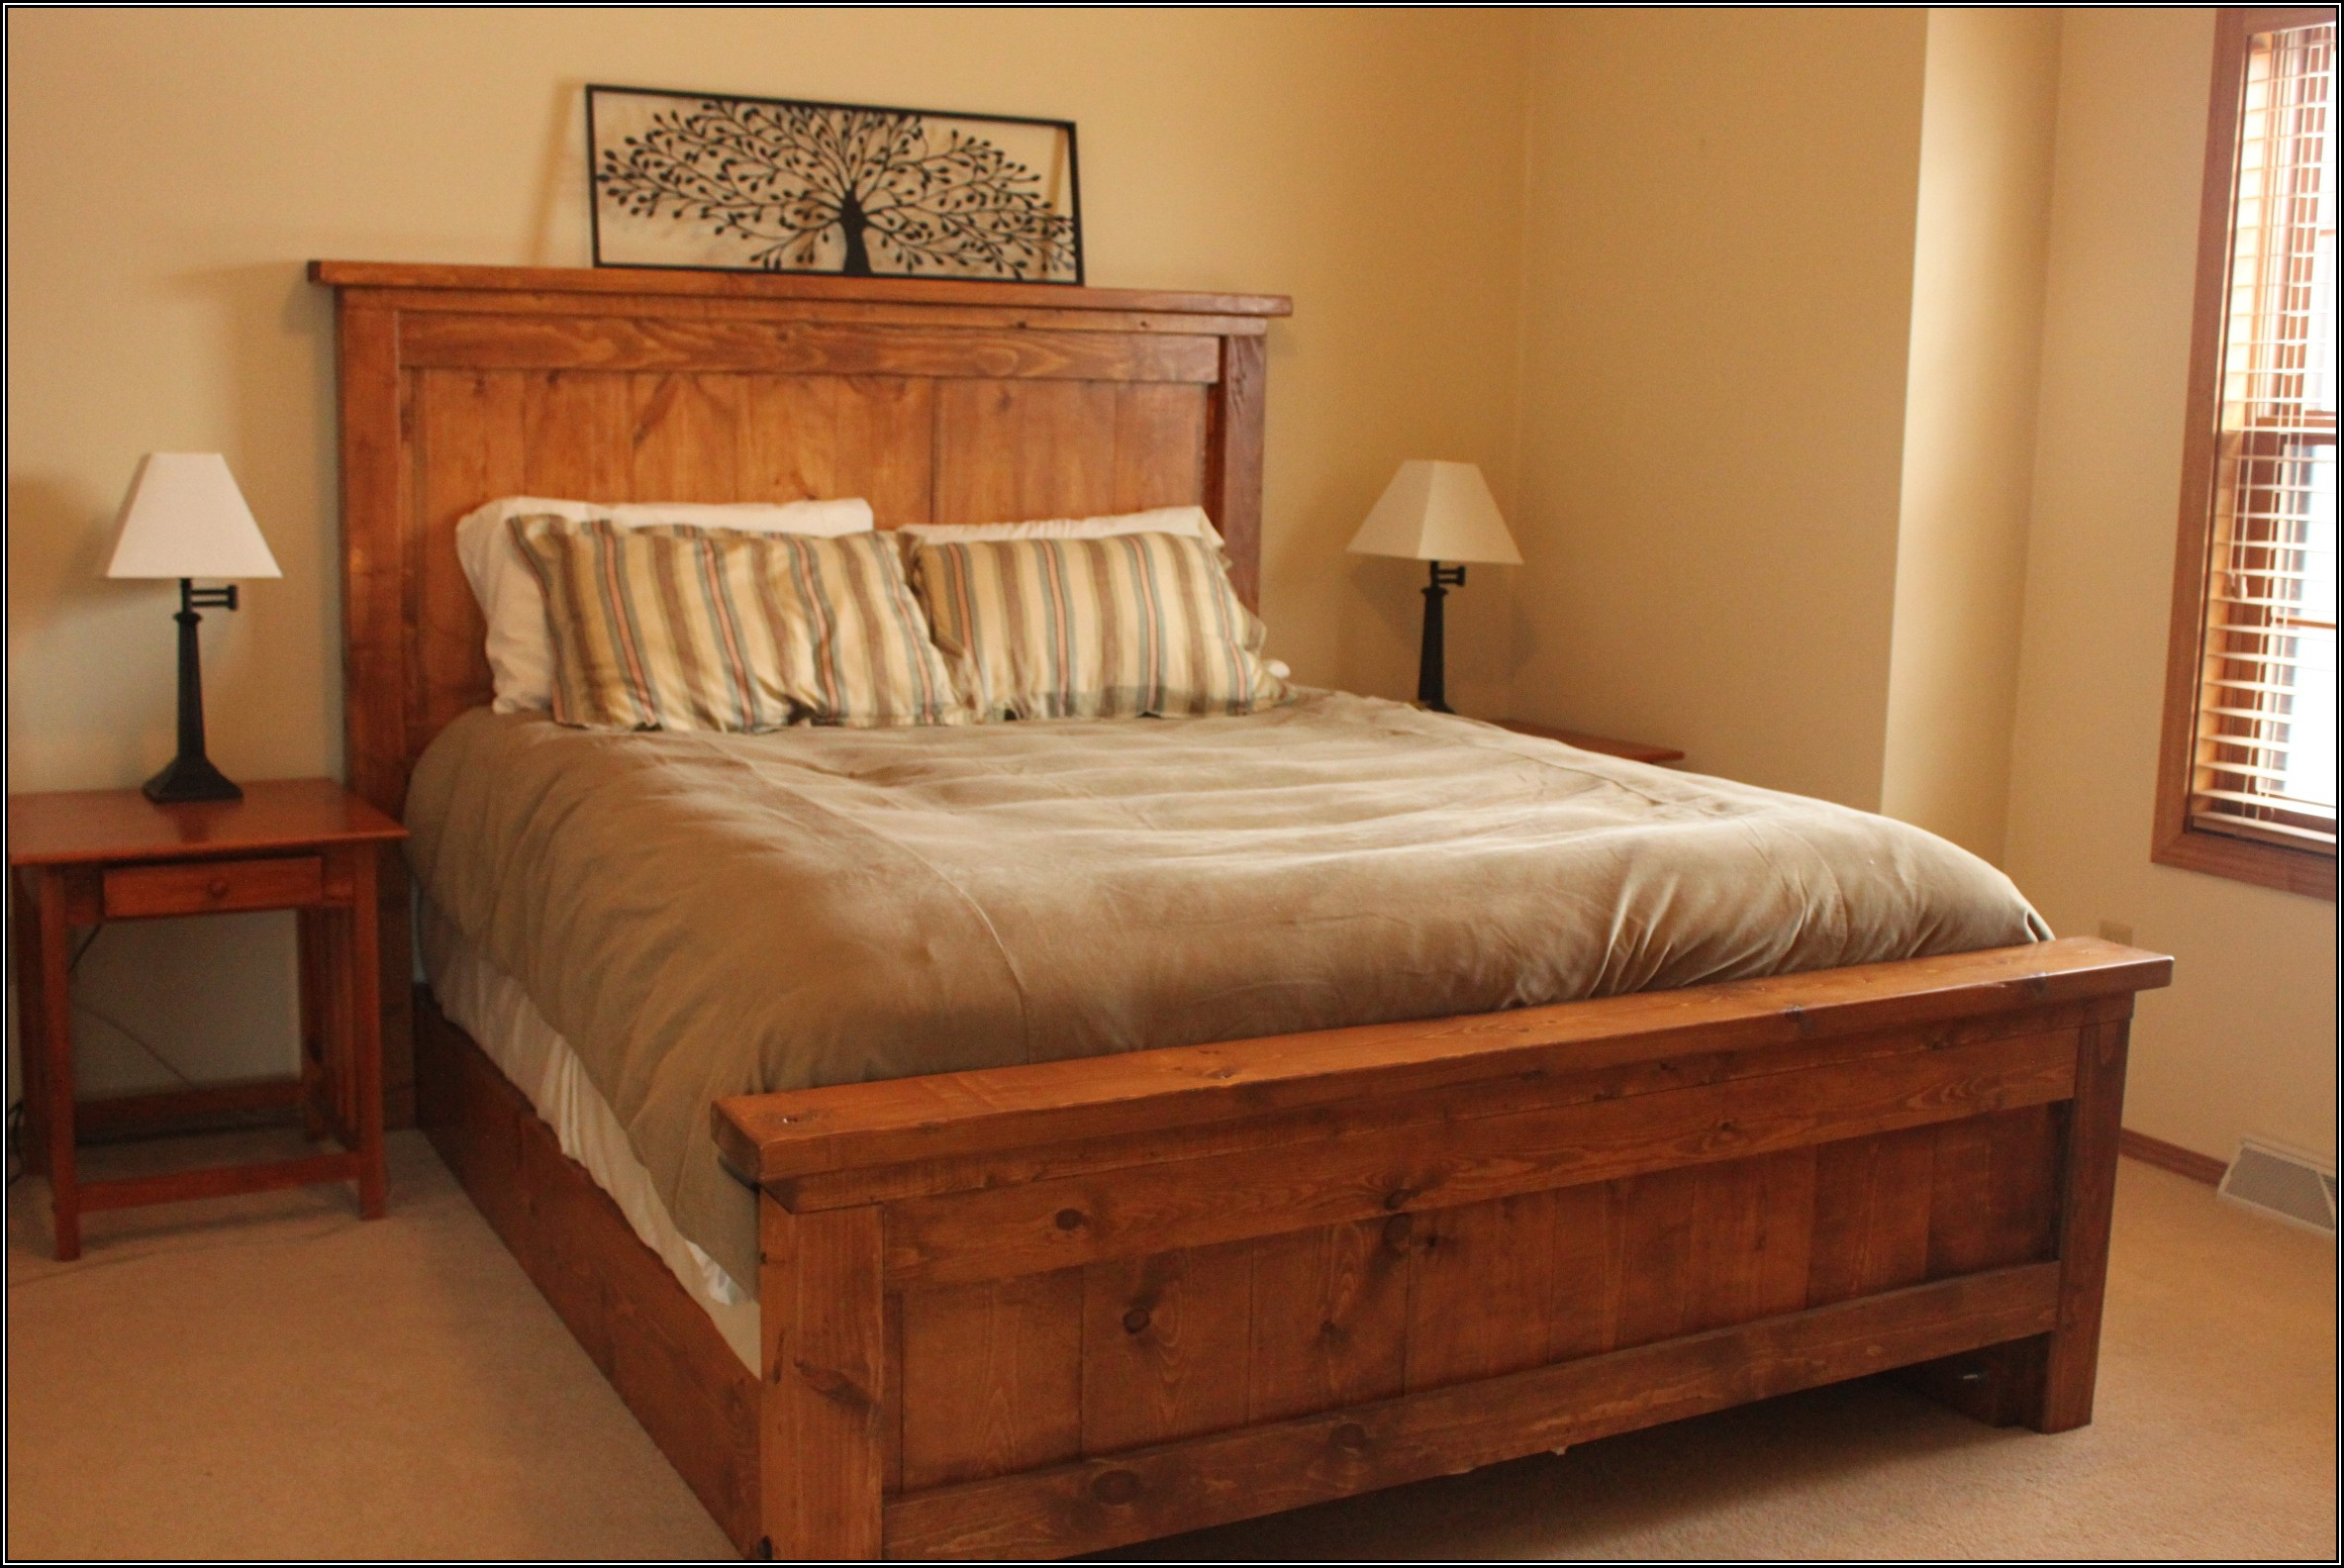 Simple wood bed frame ideas homesfeed Simple wood bed frame designs